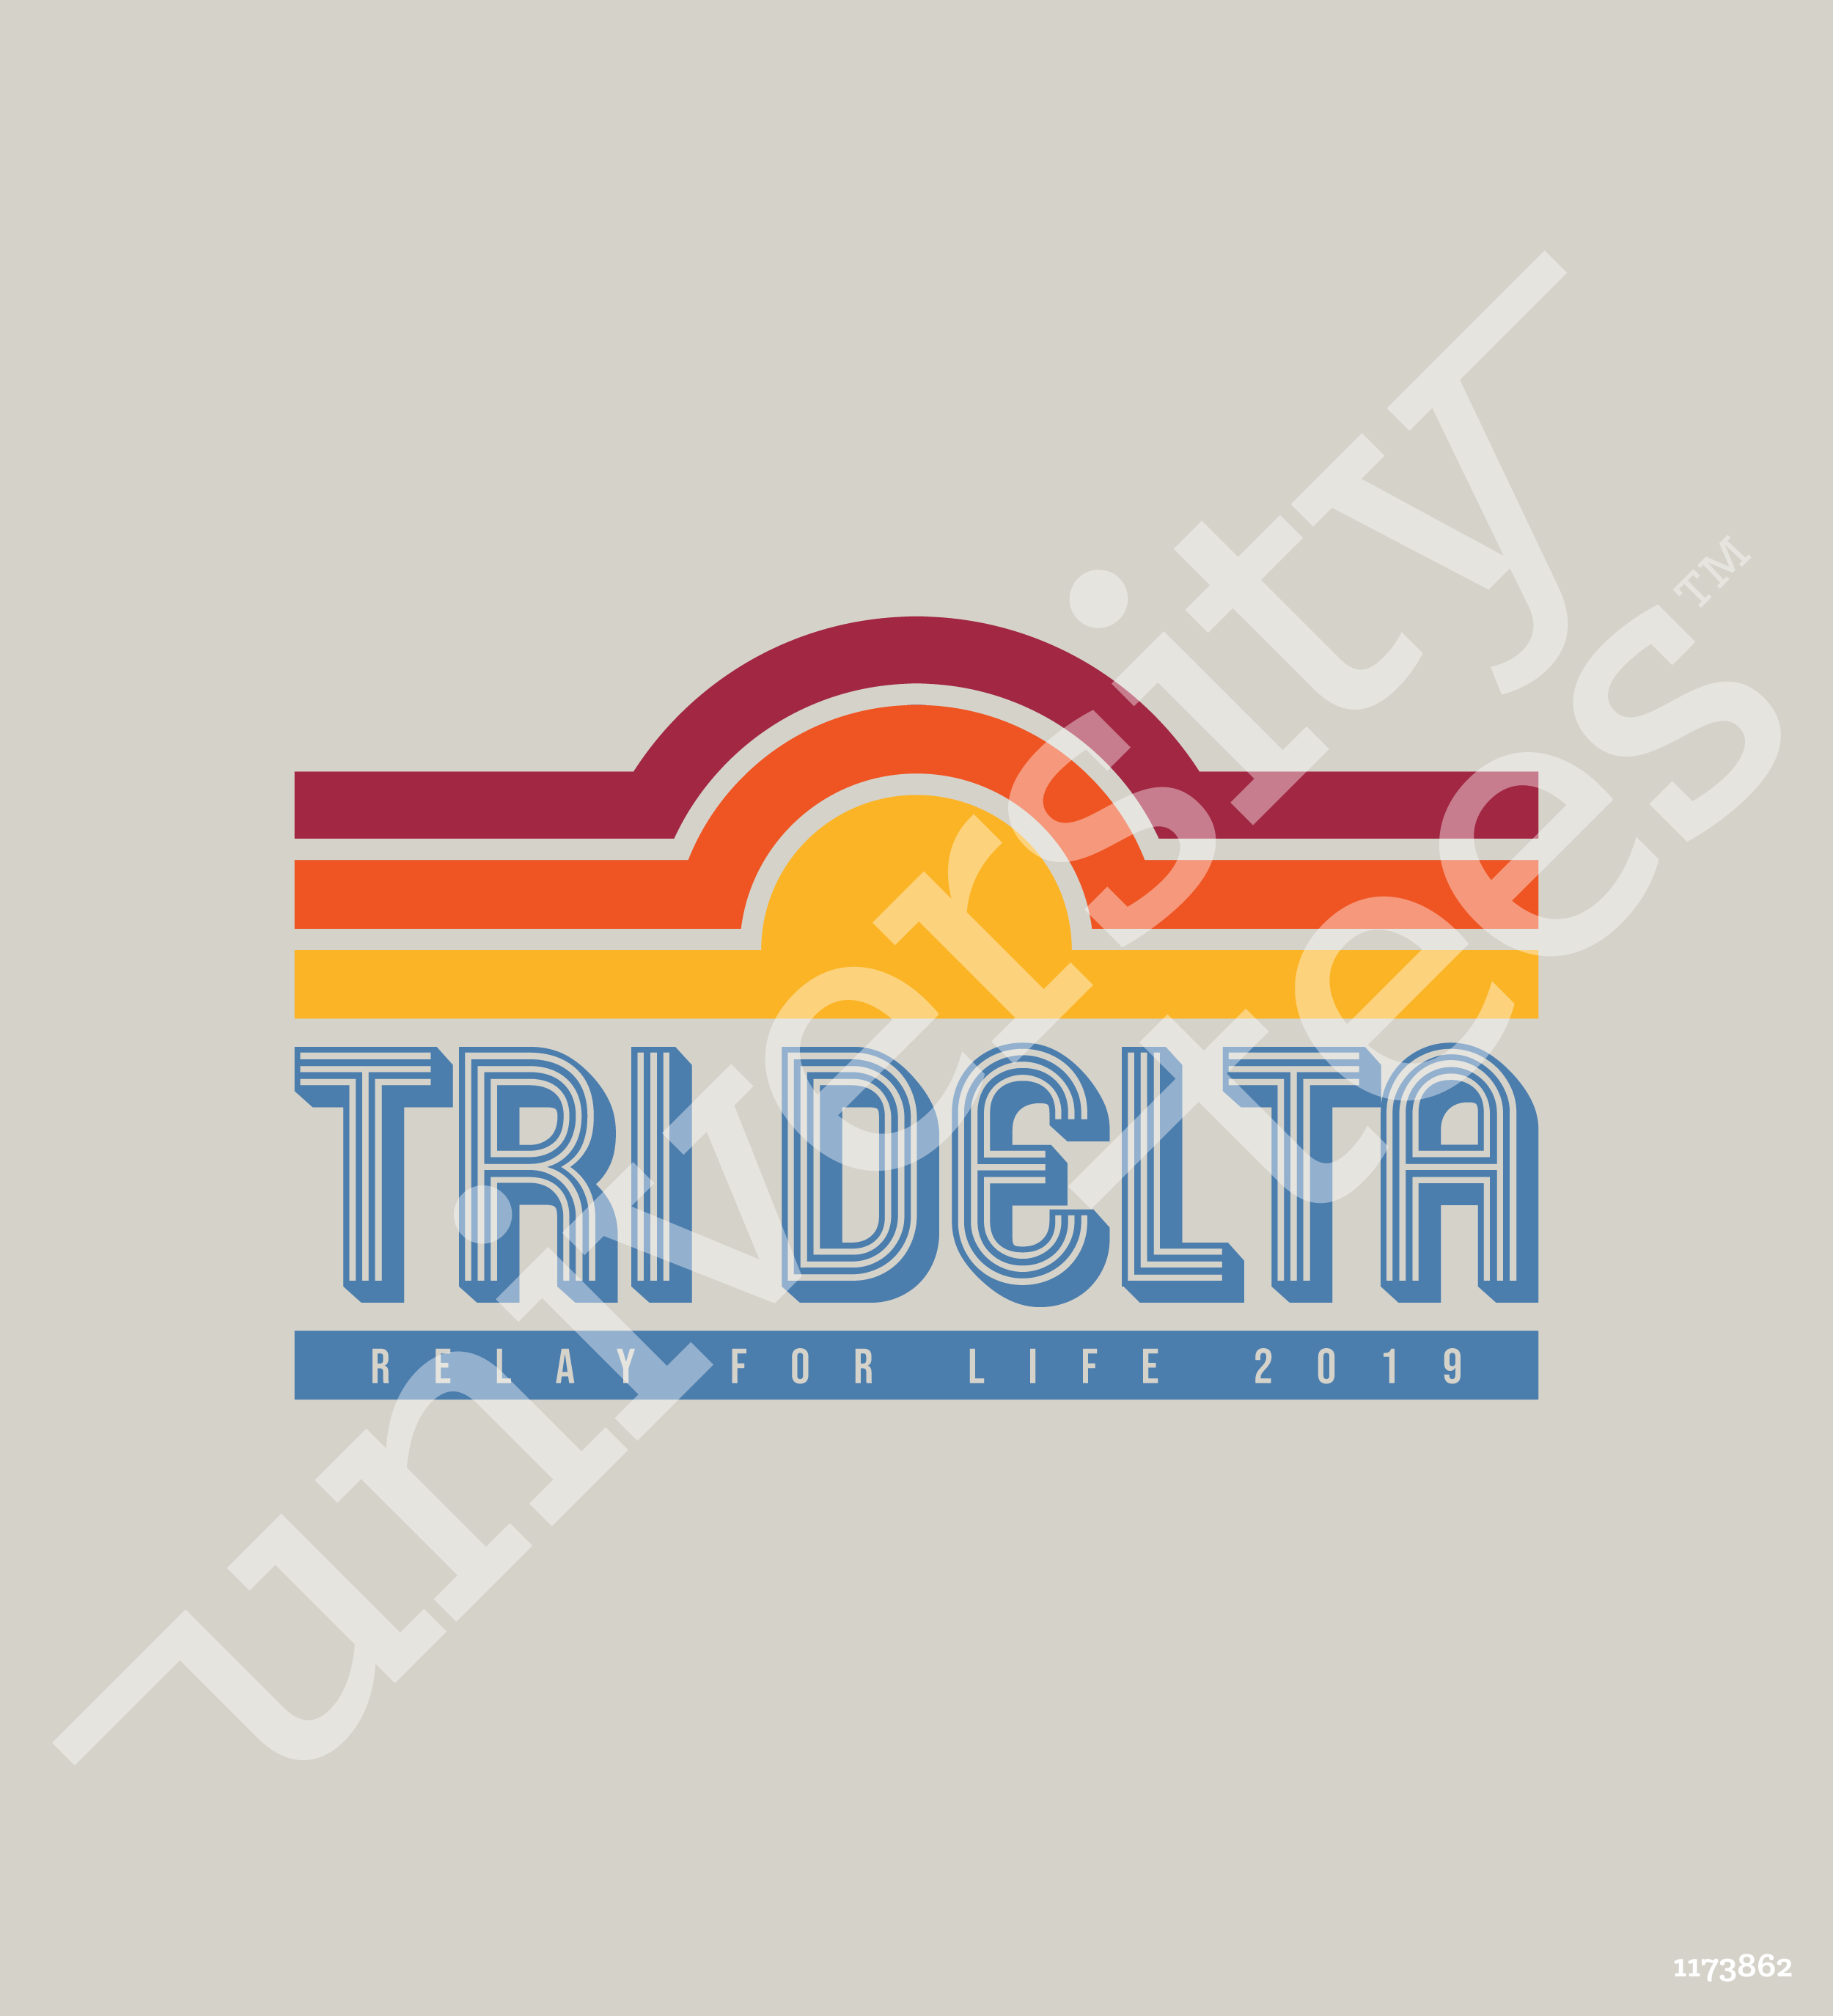 Pin By Abigailgracechiles On Marketing Committee Vehicle Logos Chevrolet Logo Tri Delta